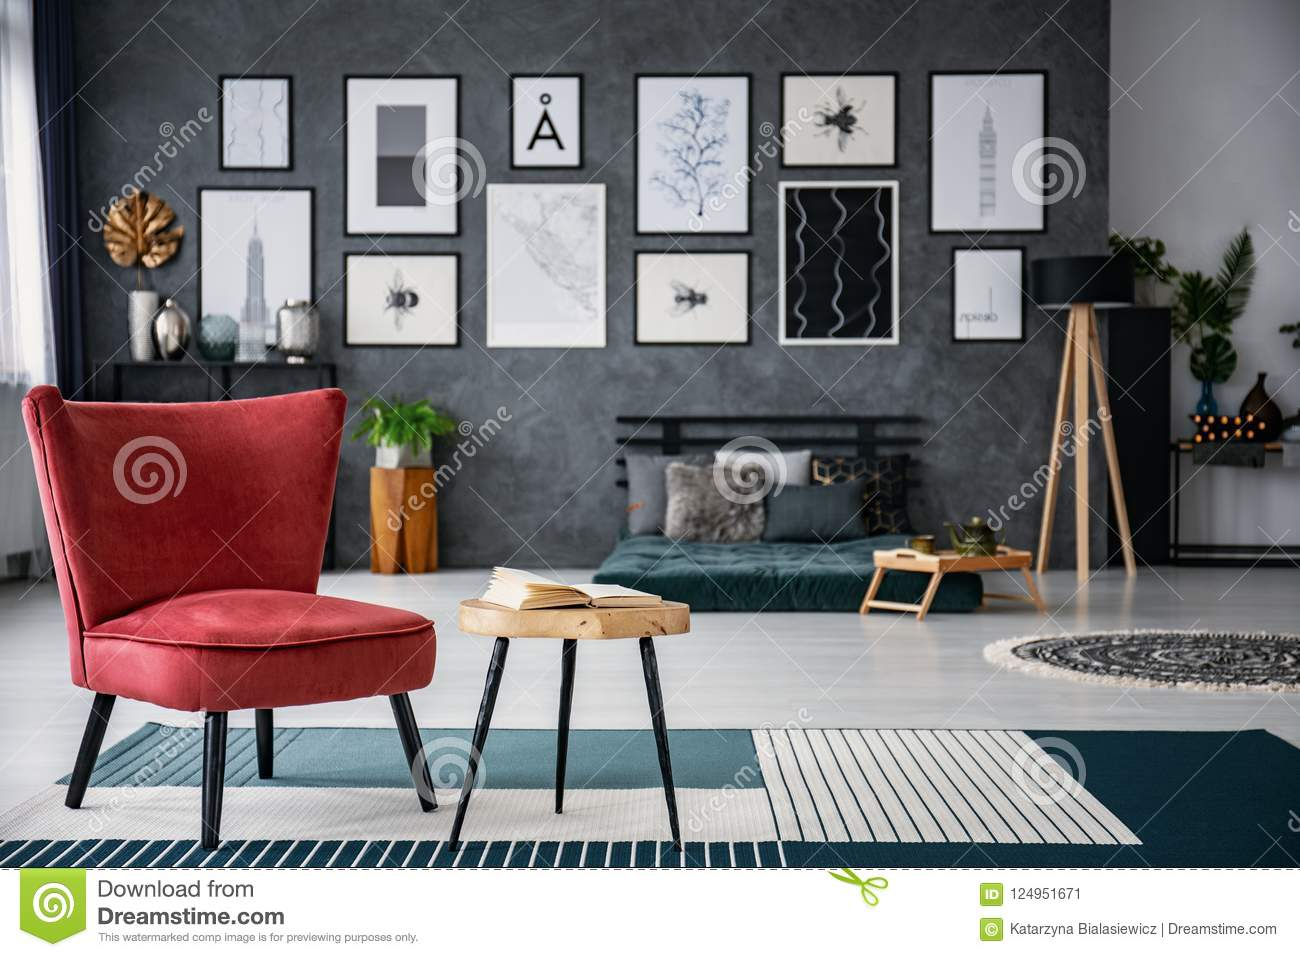 Delightful Download Red Armchair Next To Table On Carpet In Dark Grey Living Room  Interior With Gallery